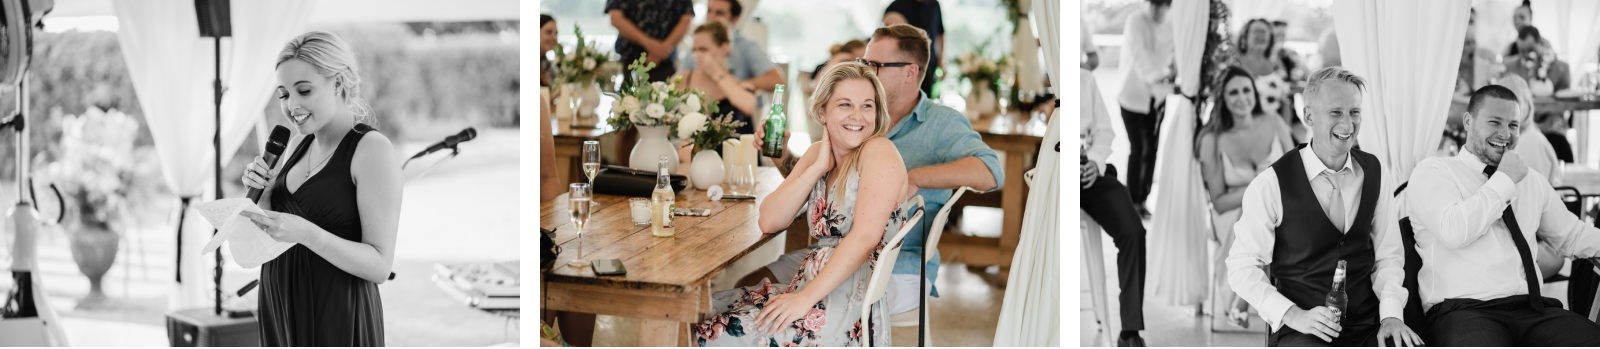 wallalong-house-hunter-valley-wedding-photographer-64